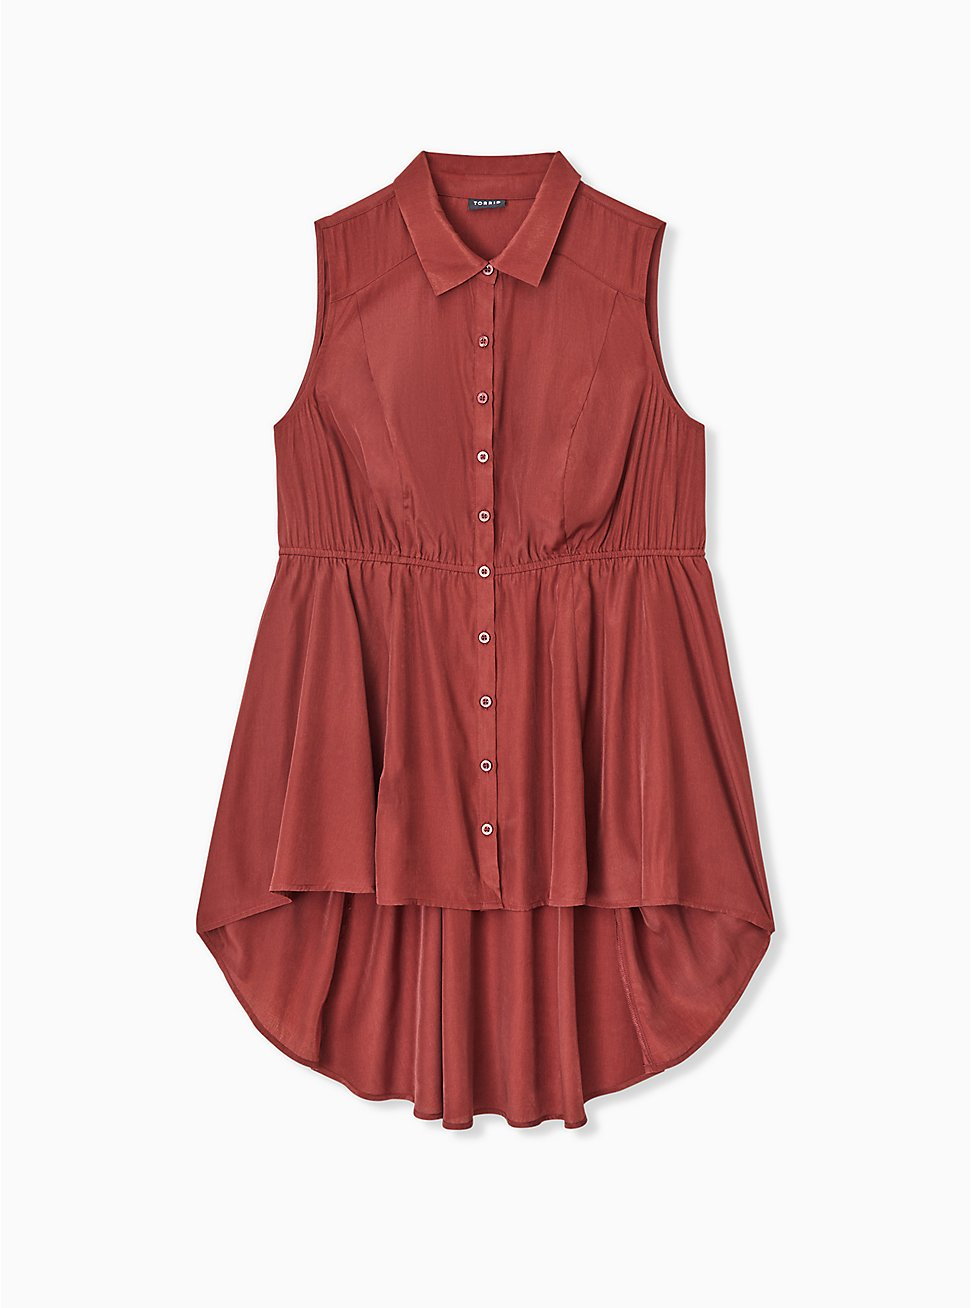 Plus Size Brick Red Poplin Hi-Lo Sleeveless Babydoll Shirt, MADDER BROWN, hi-res